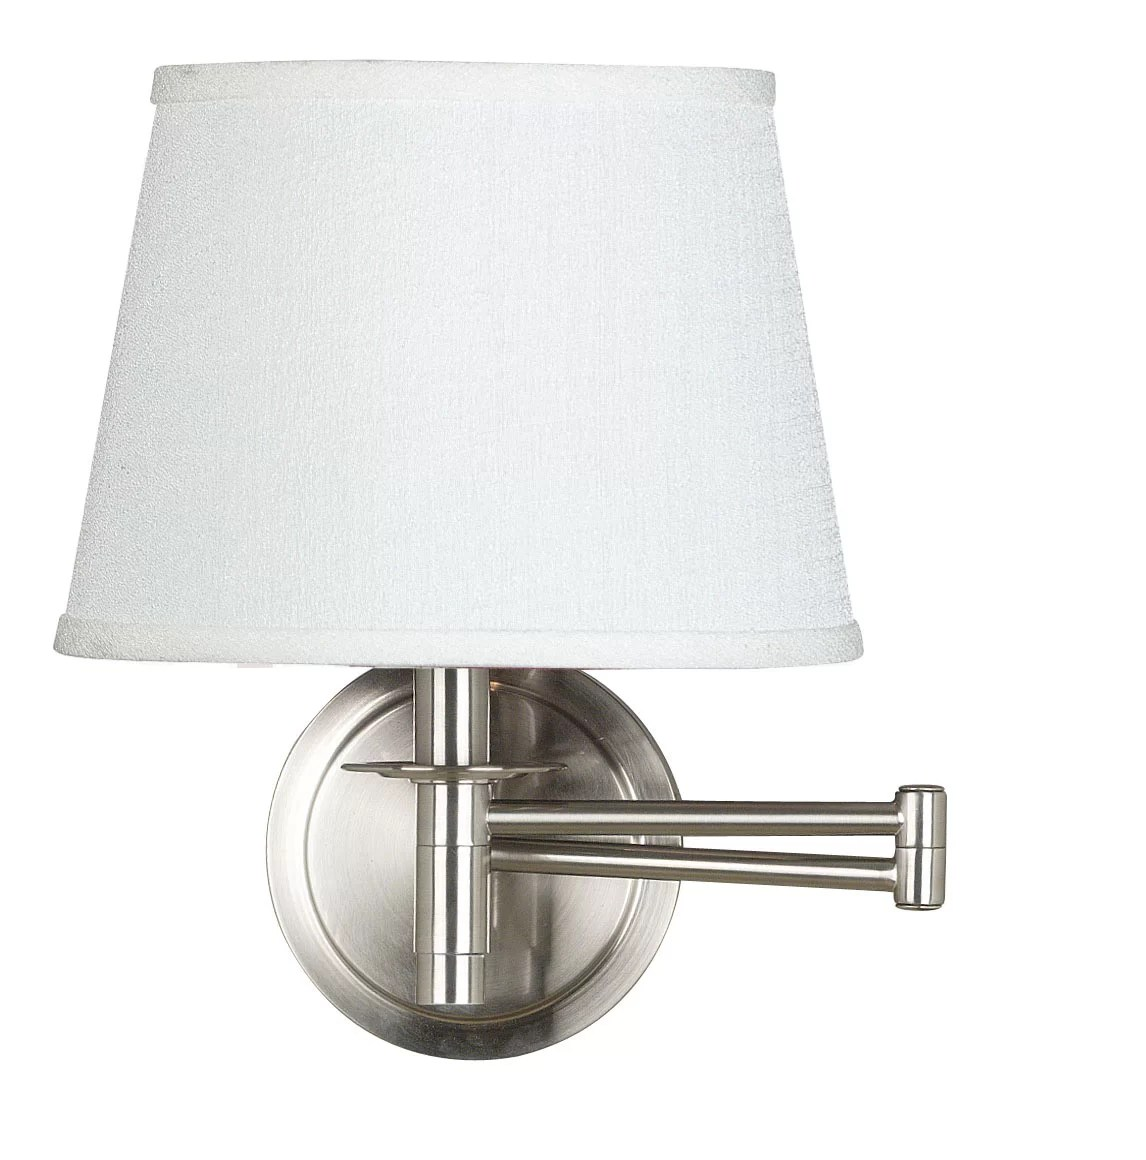 Arm Lamp Aquila Swing Arm Lamp